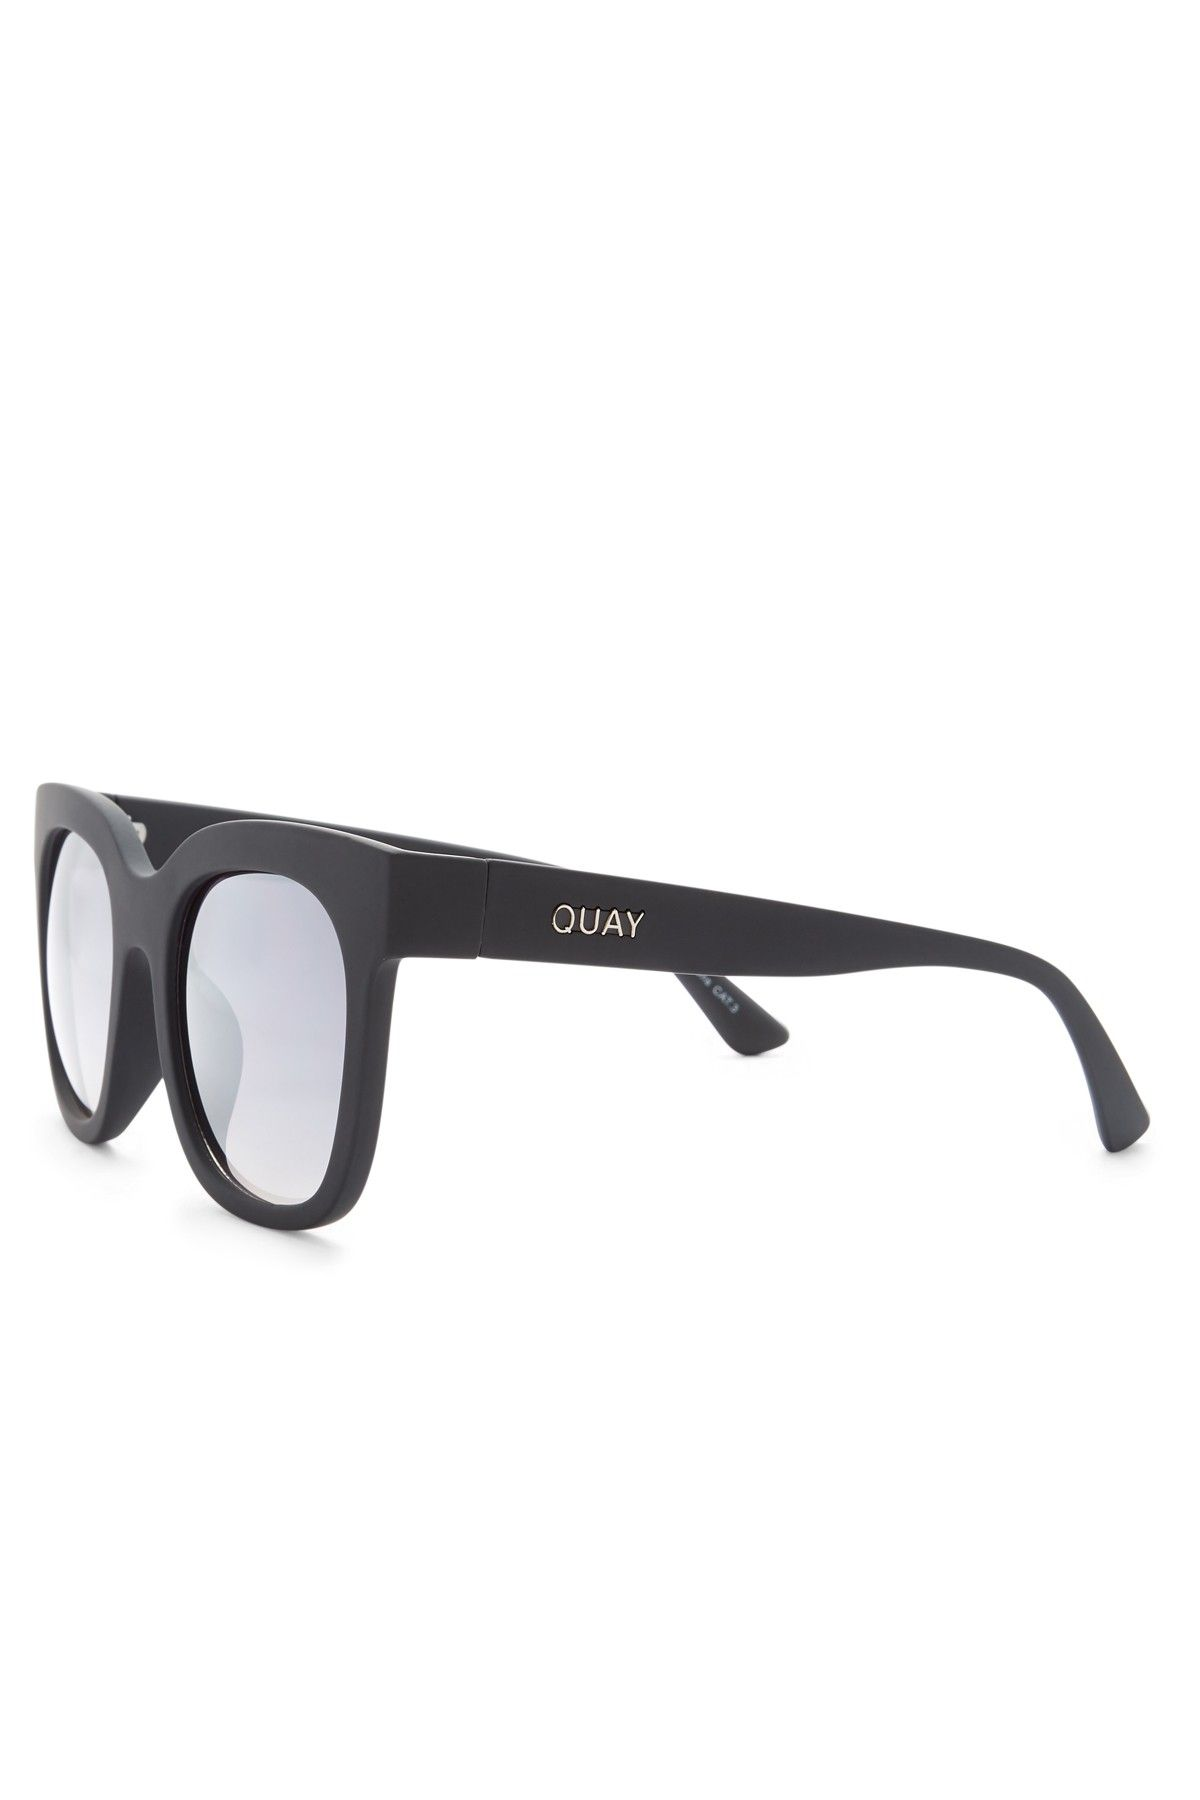 bdb935adc4 Women s Sagano Square Sunglasses by QUAY AUSTRALIA on  nordstrom rack